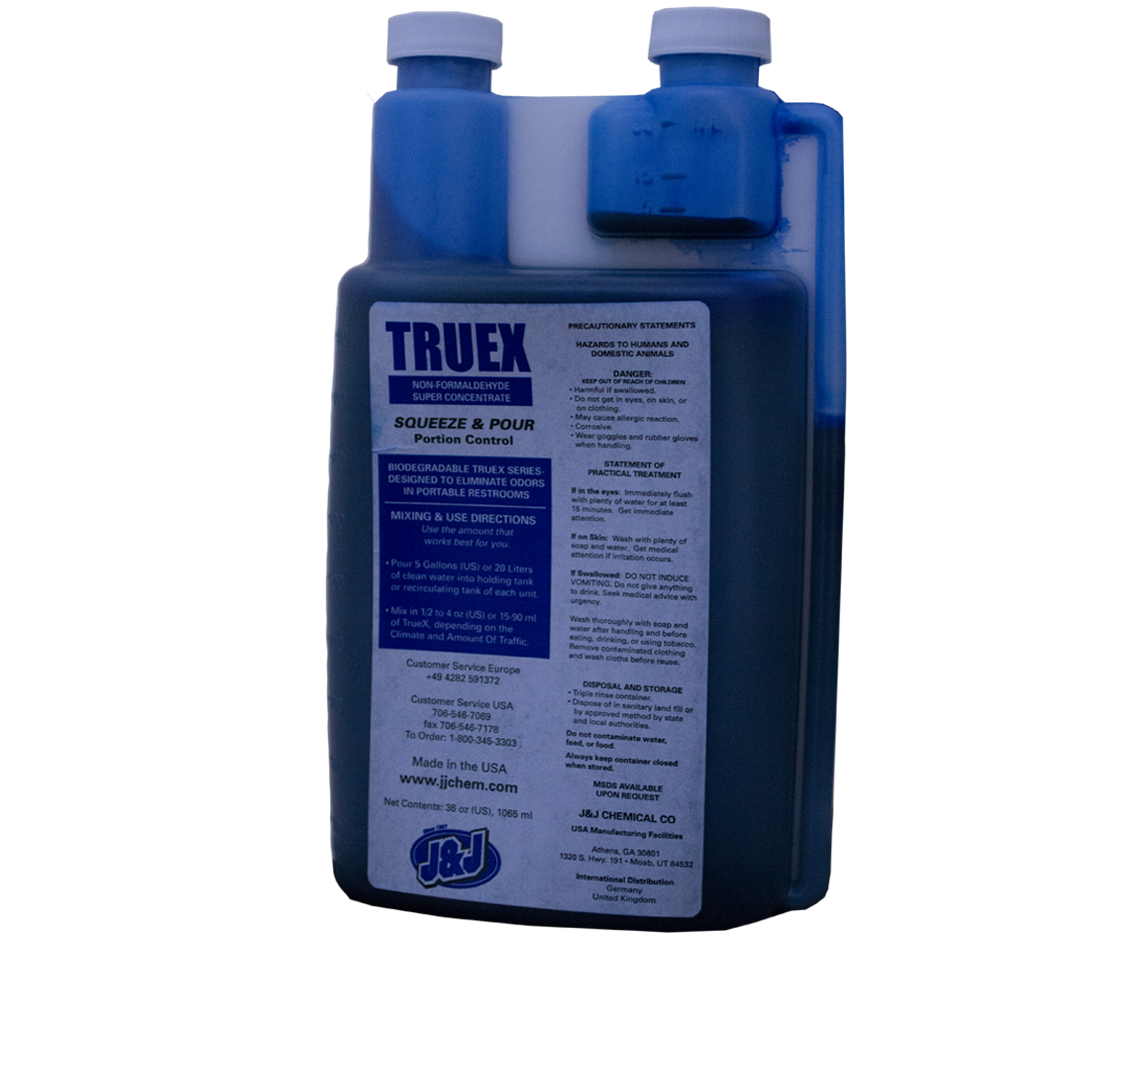 Non-Formaldehyde Super Concentrate Truex